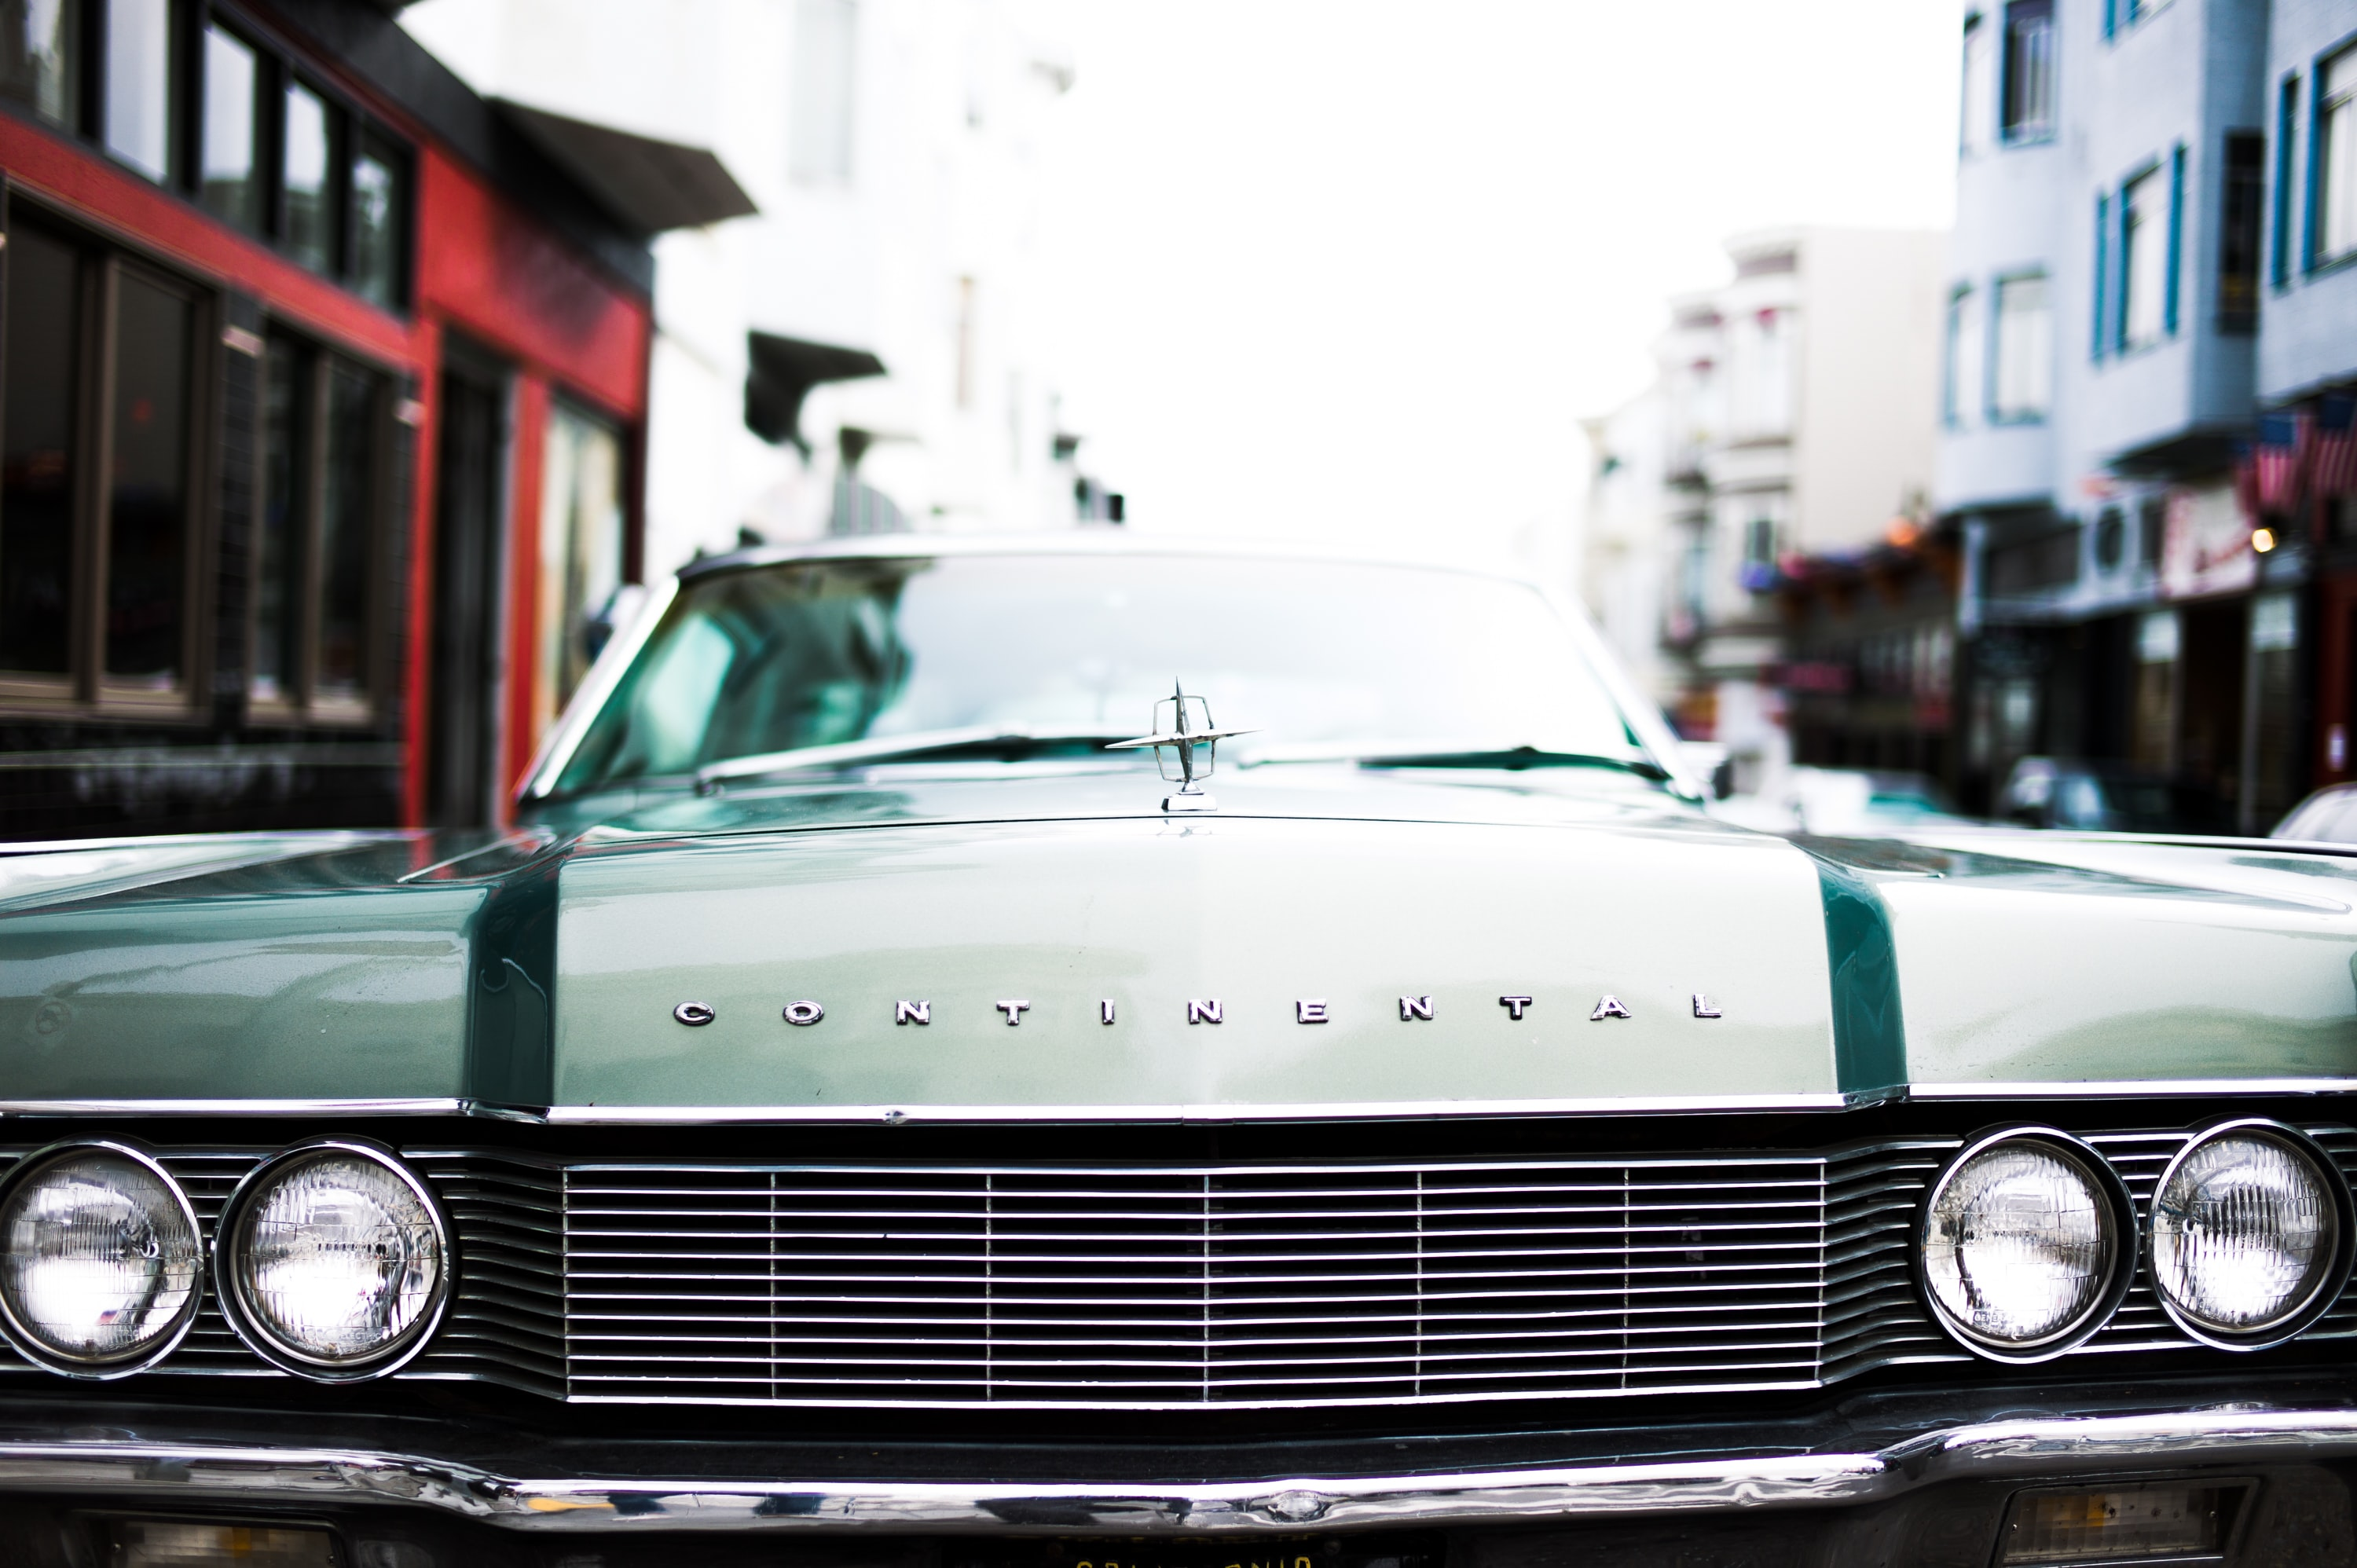 Chrome grille and headlights of a vintage car in San Francisco.